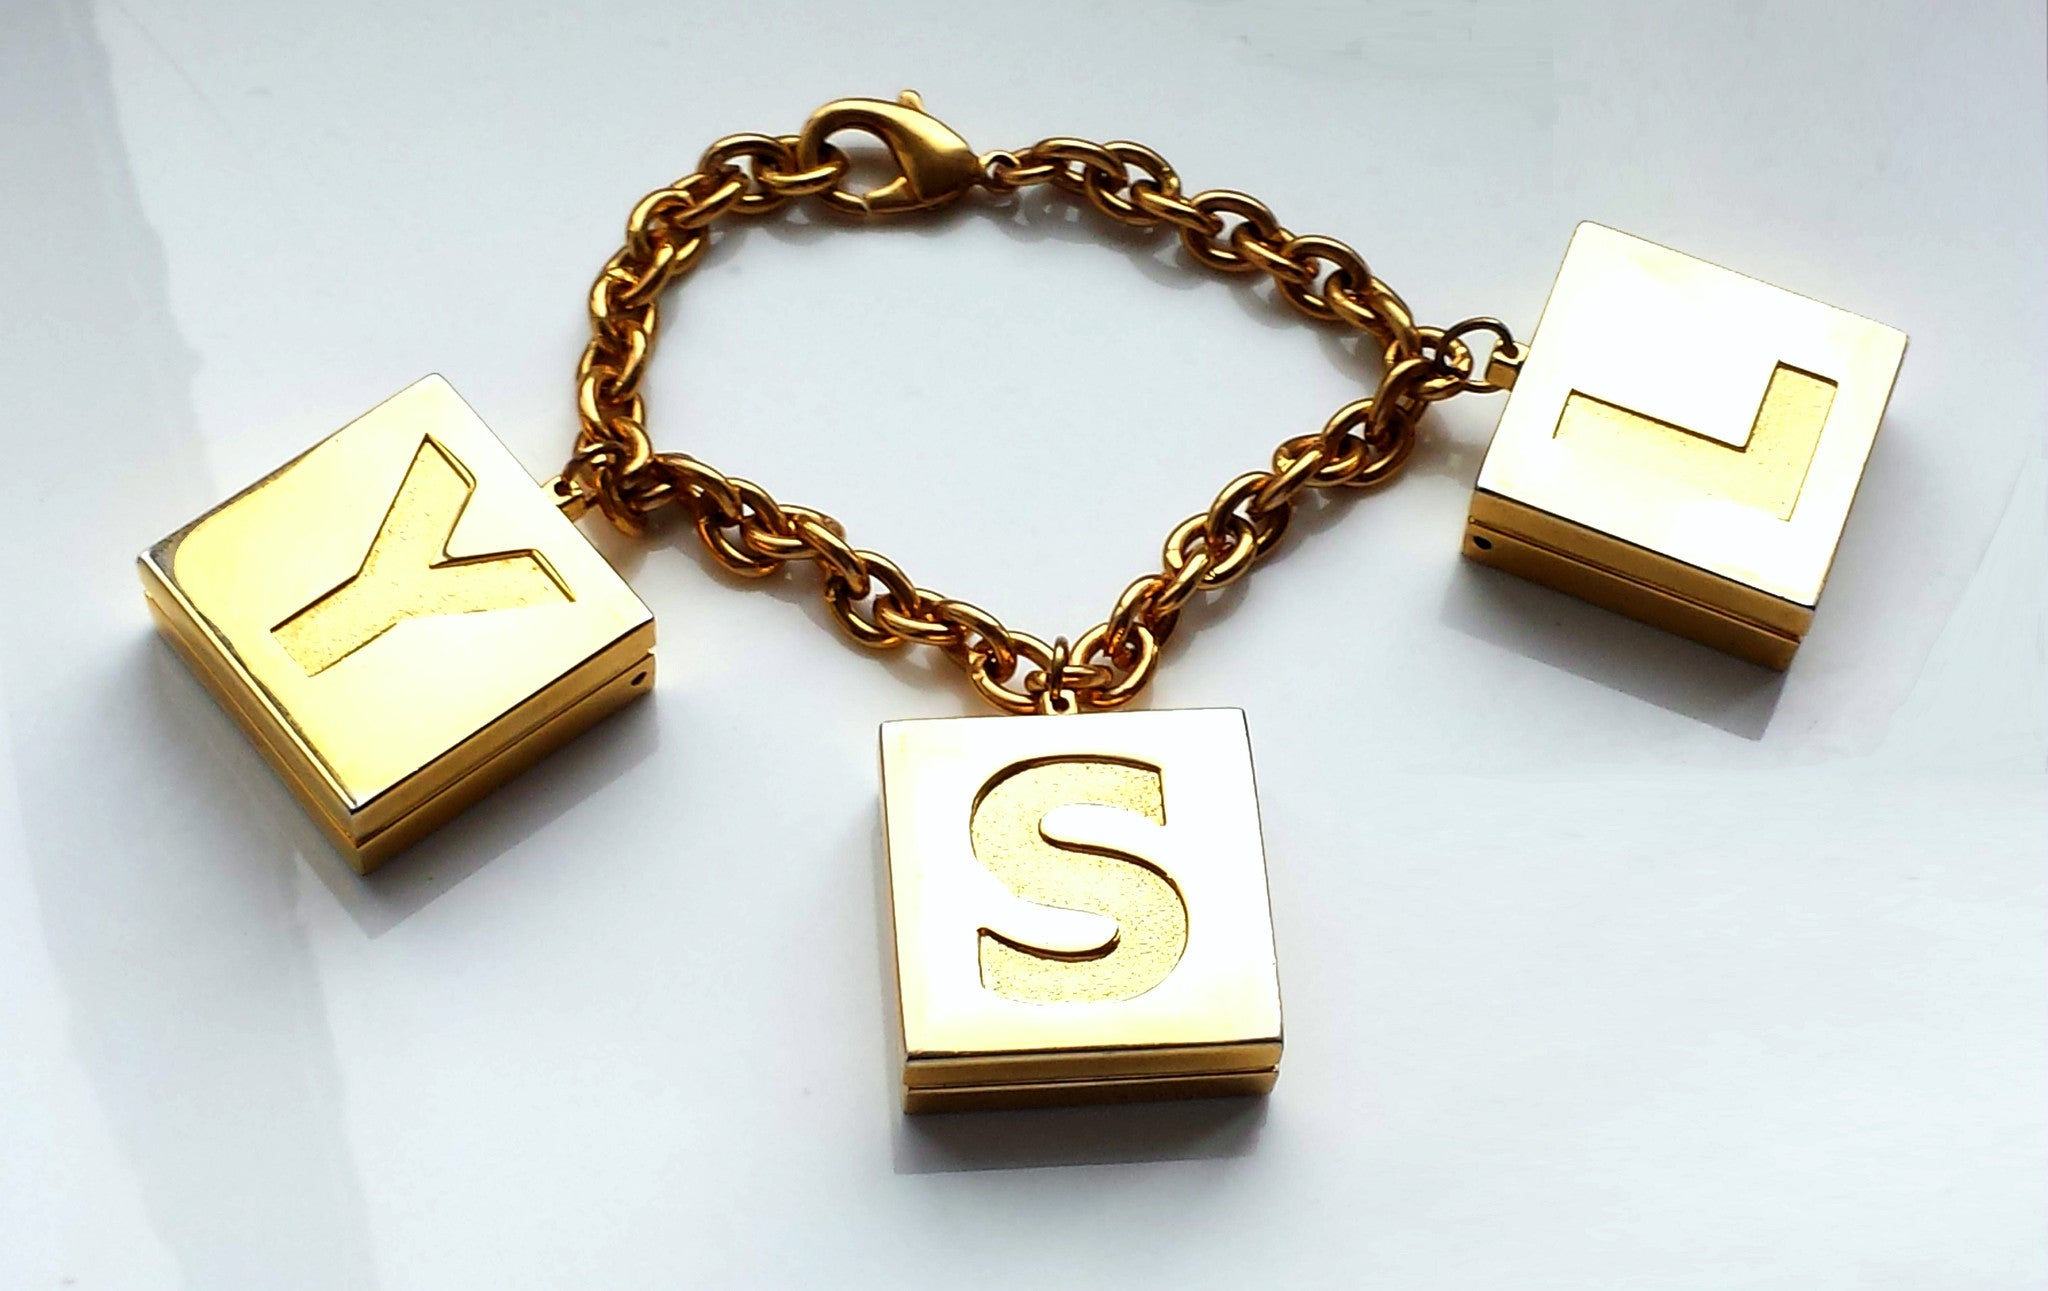 Vintage YSL Yves Saint Laurent Gold Tone Limited Edition Bracelet with Lip Gloss